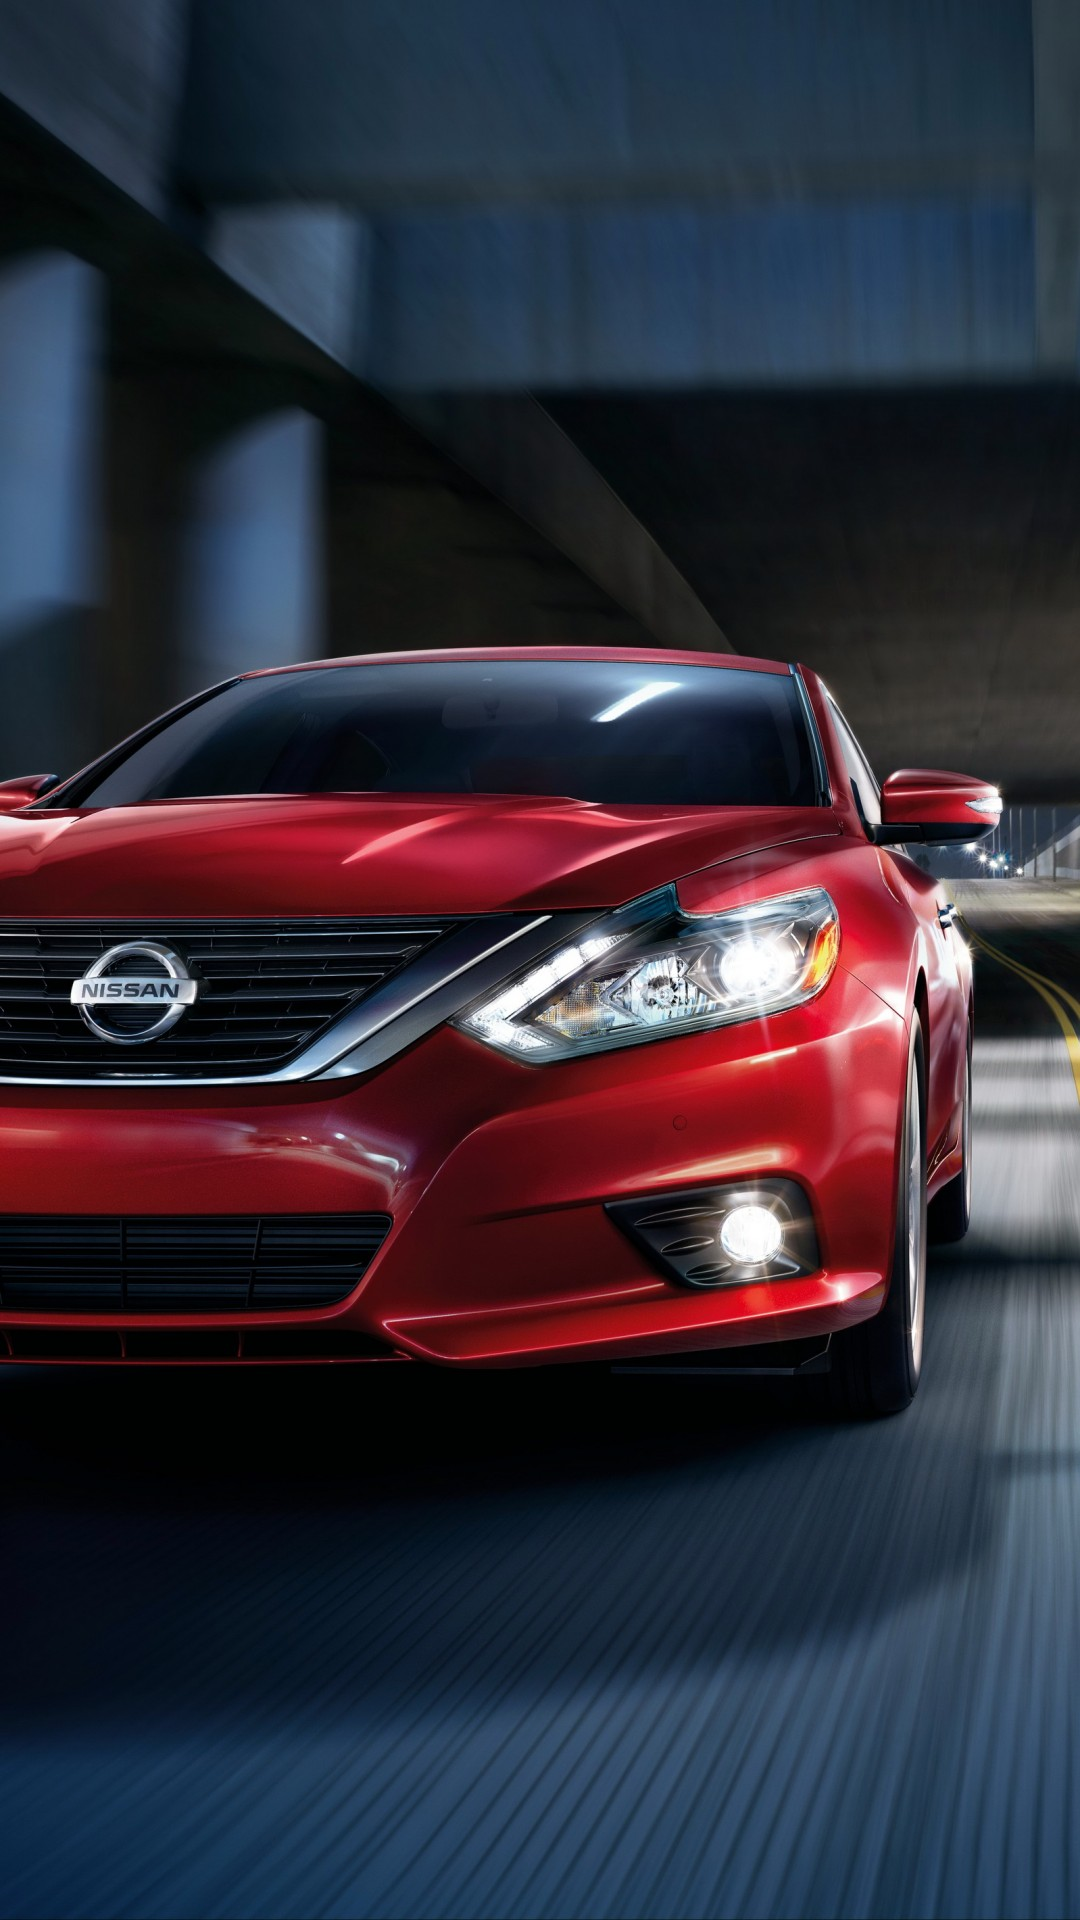 Wallpaper Nissan Altima, red, speed, Cars & Bikes #11898